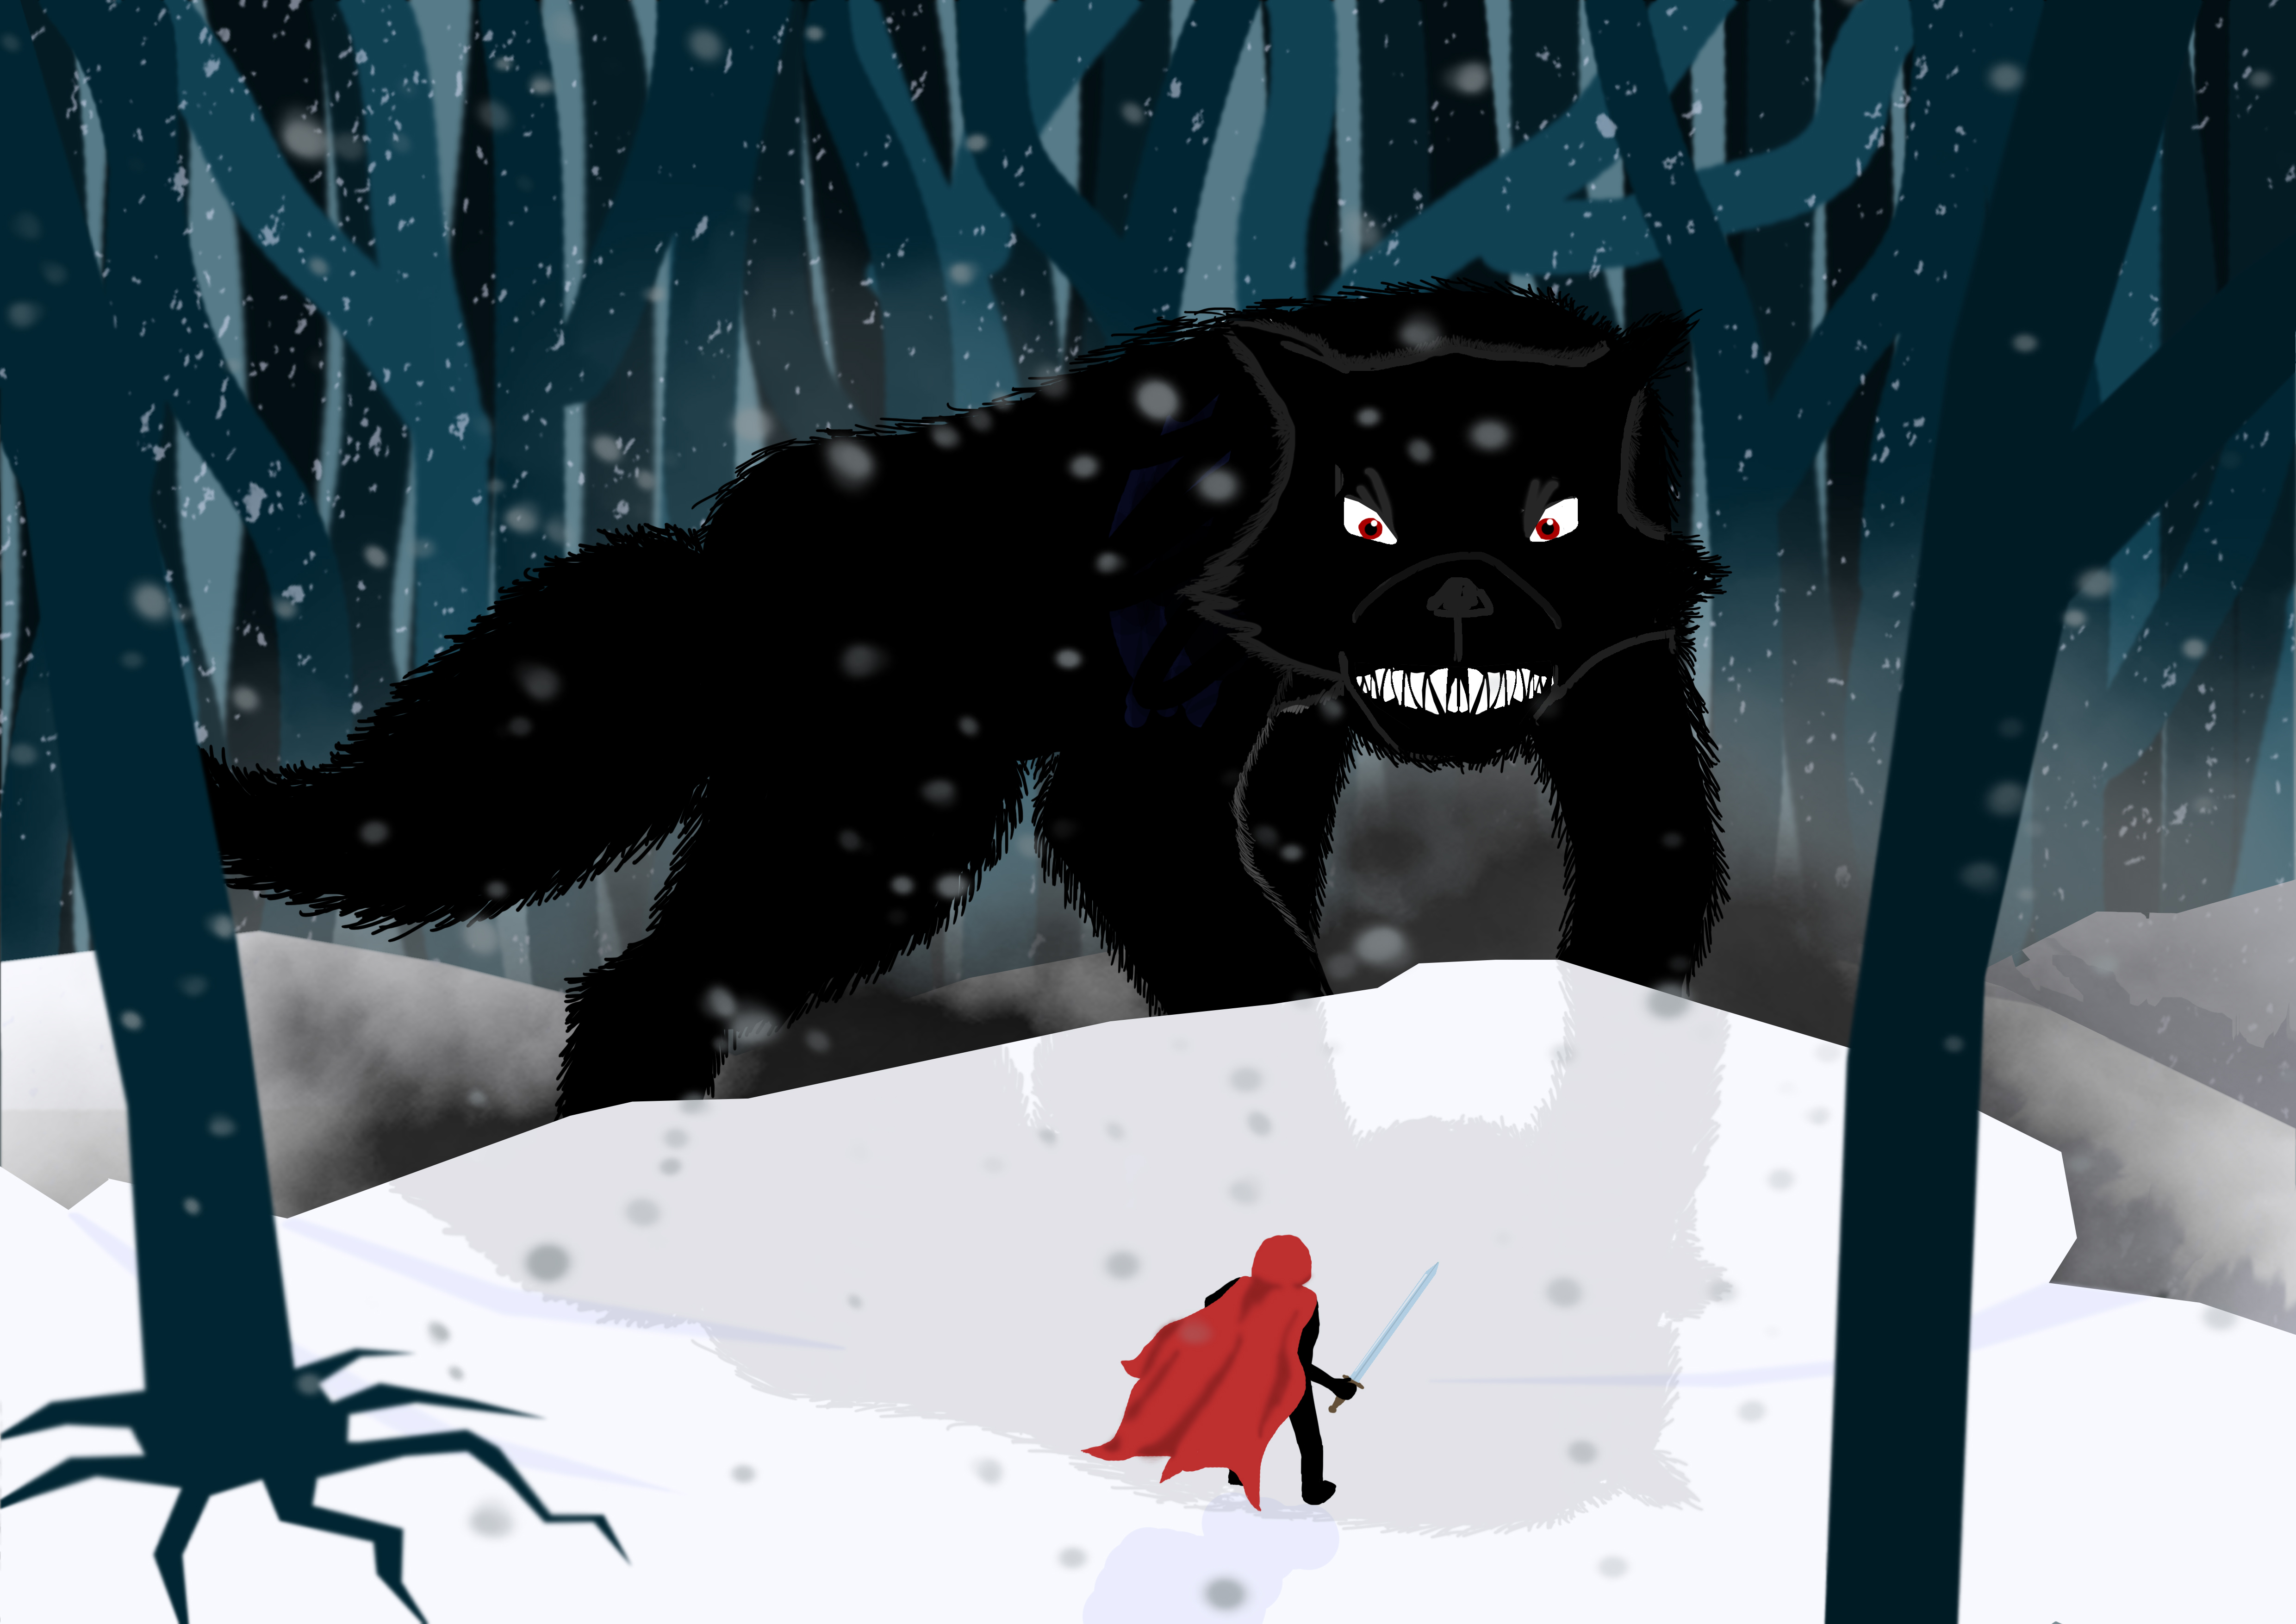 Warrior Red and the Big Bad Wolf